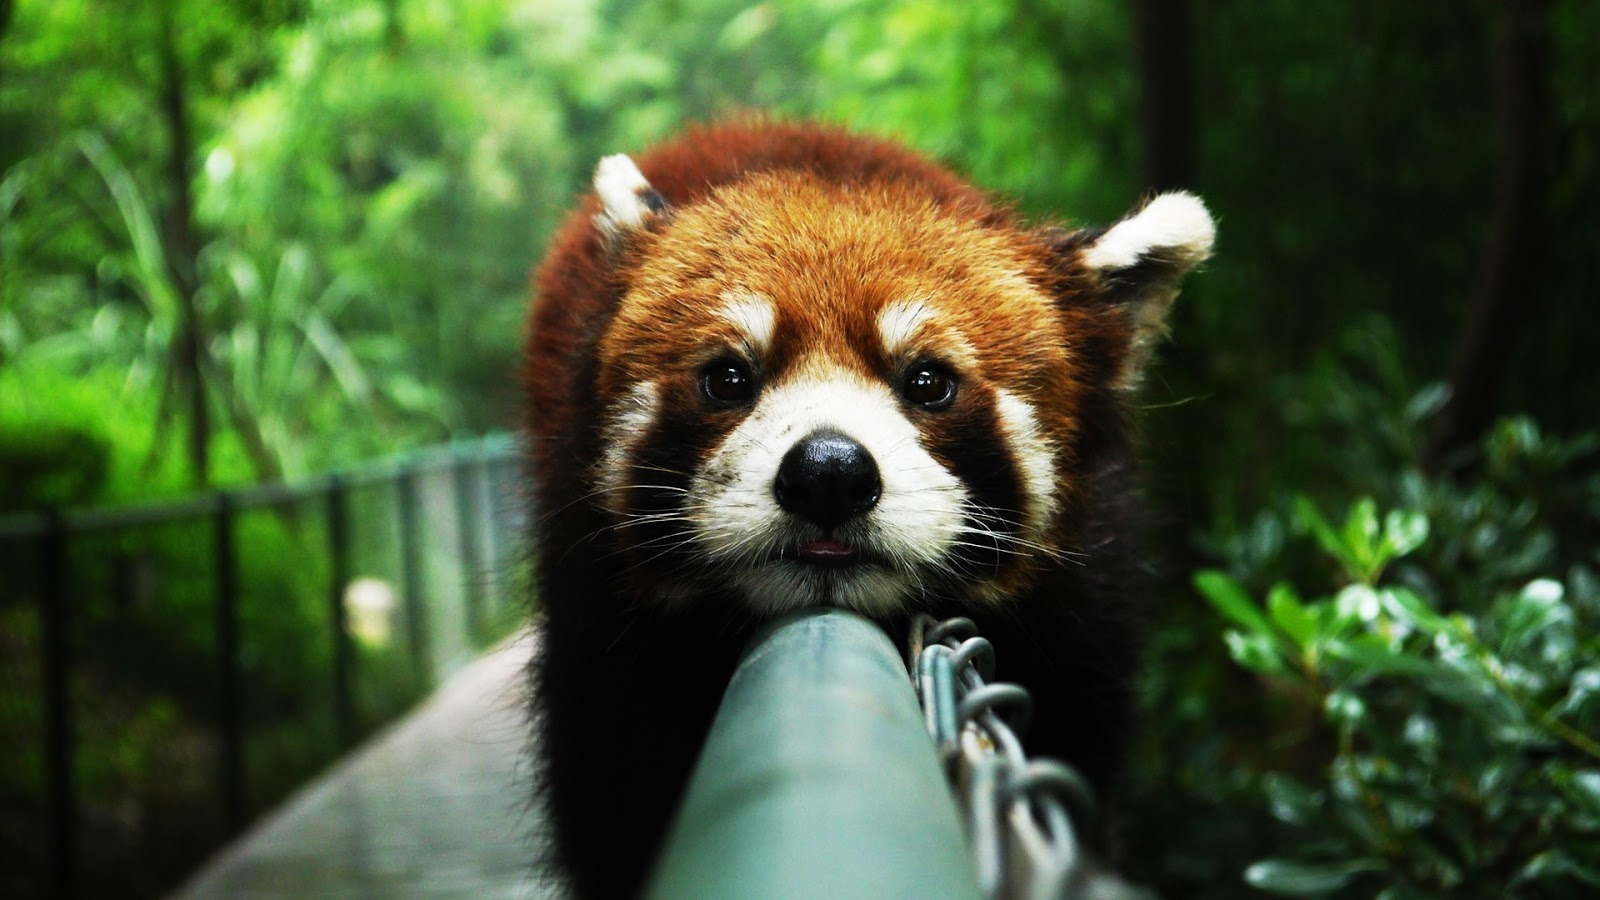 Beautiful Red Panda in the Forest Wallpaper